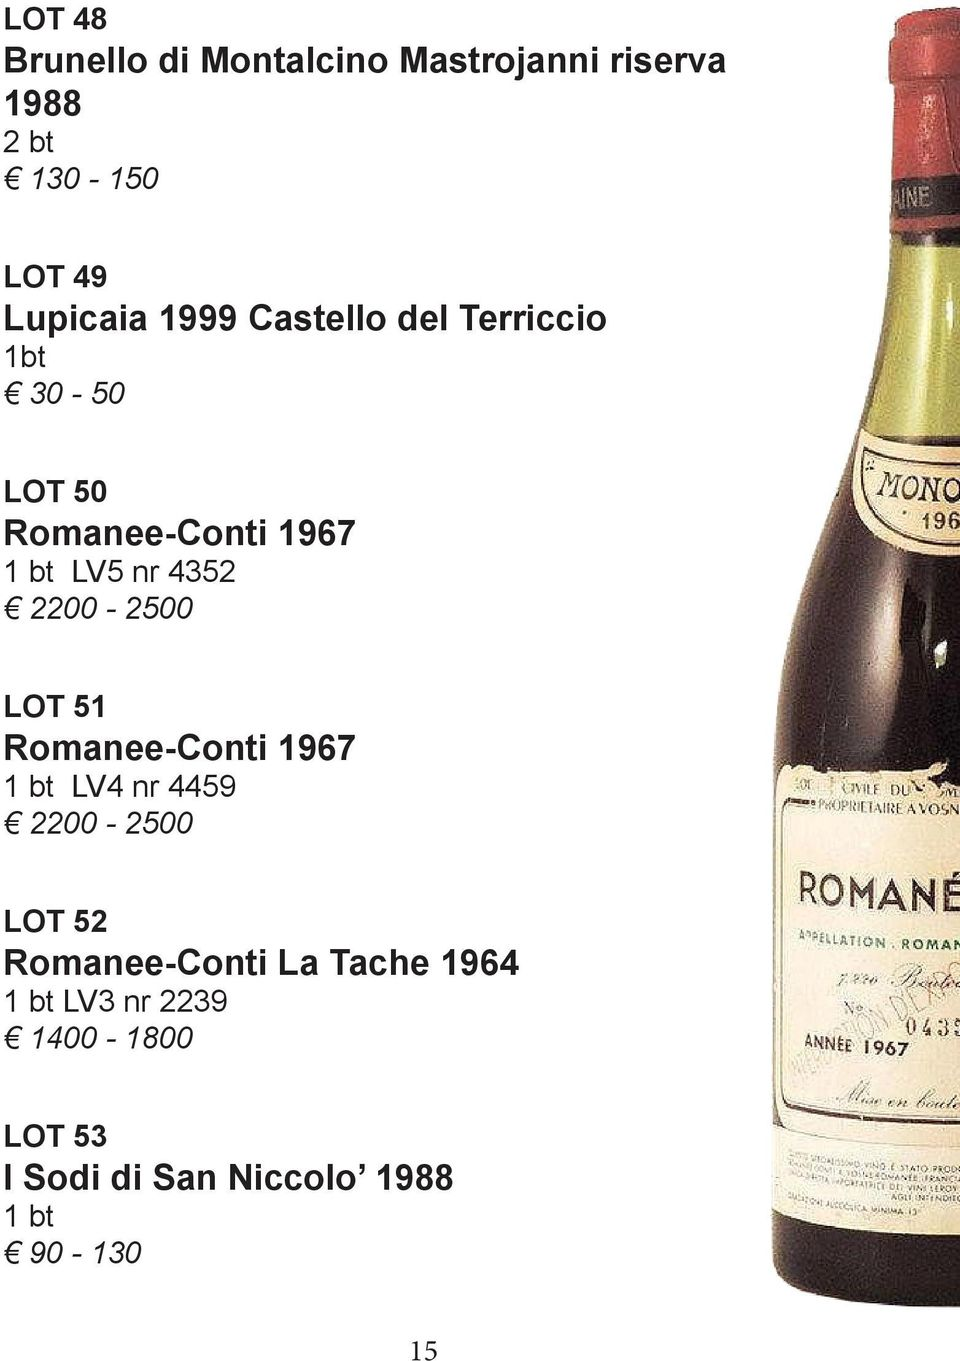 2200-2500 LOT 51 Romanee-Conti 1967 1 bt LV4 nr 4459 2200-2500 LOT 52 Romanee-Conti